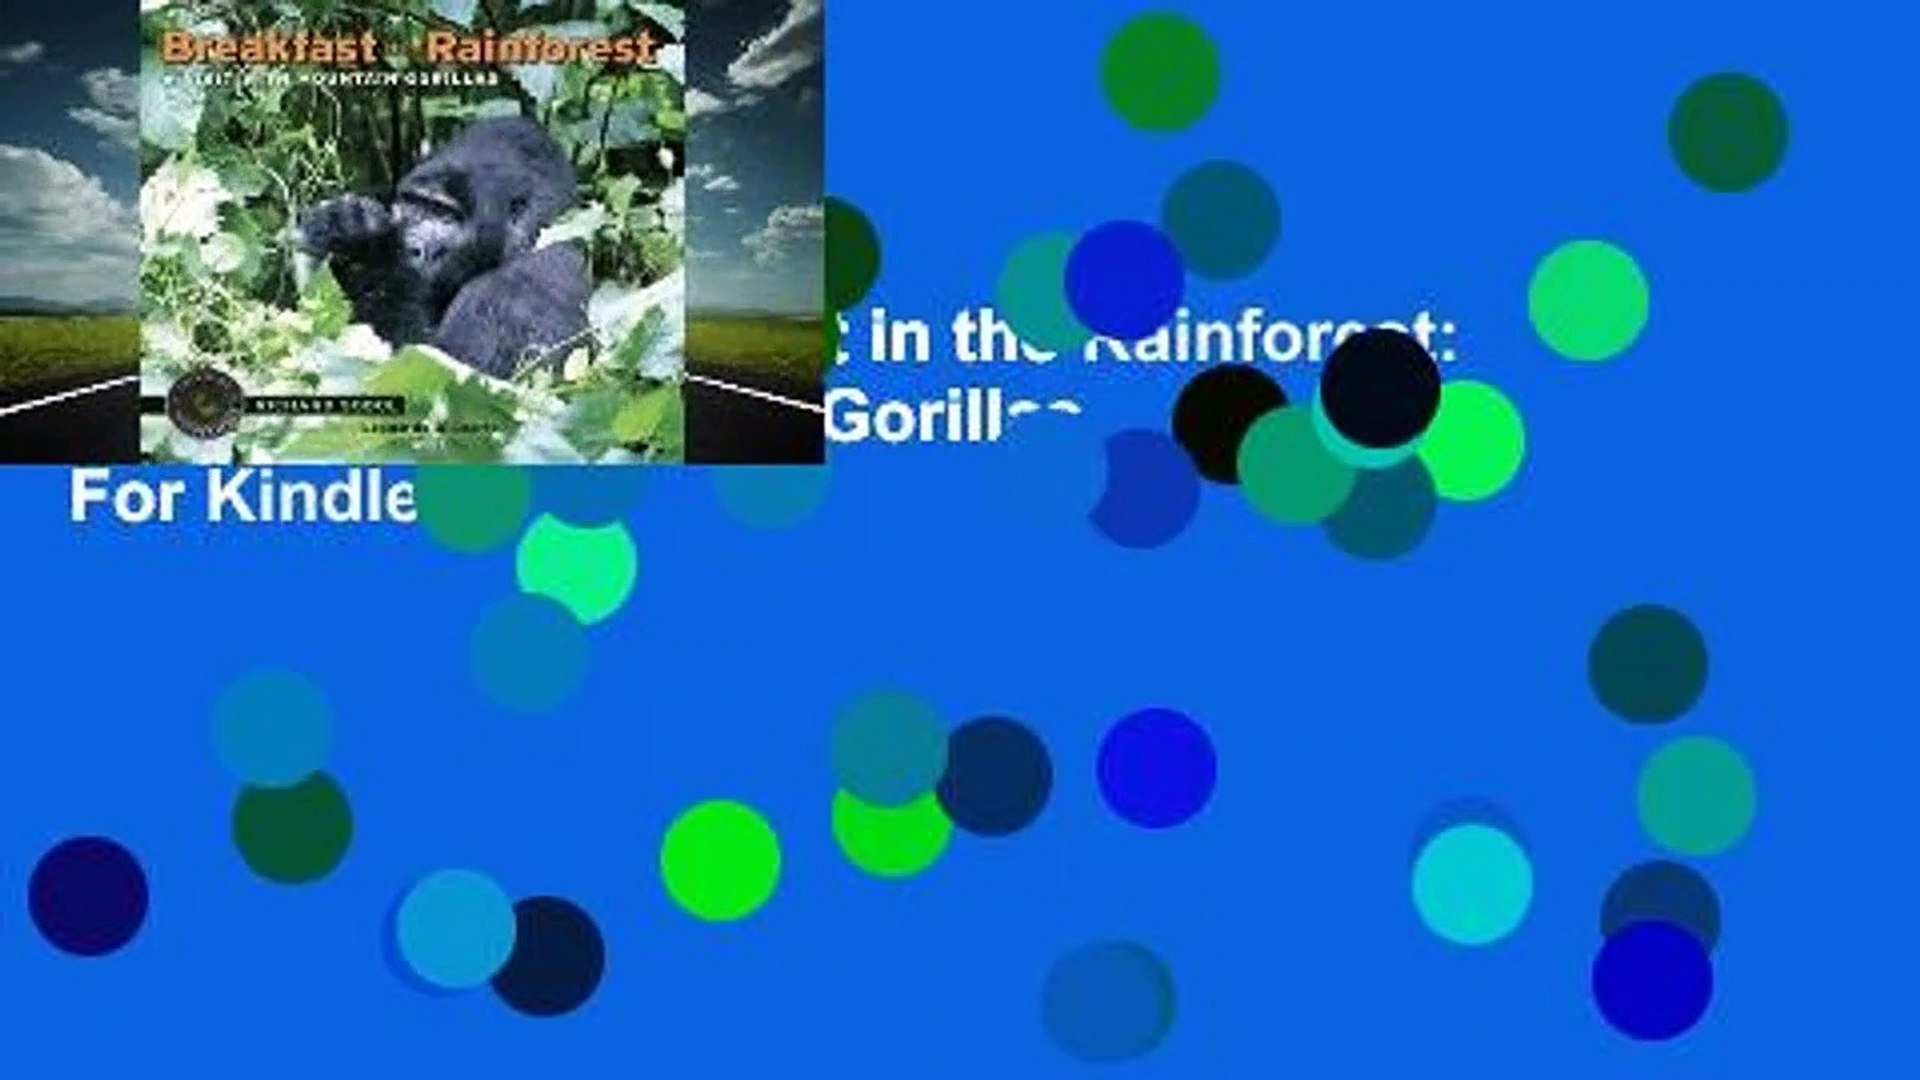 Full E-book  Breakfast in the Rainforest: A Visit with Mountain Gorillas  For Kindle